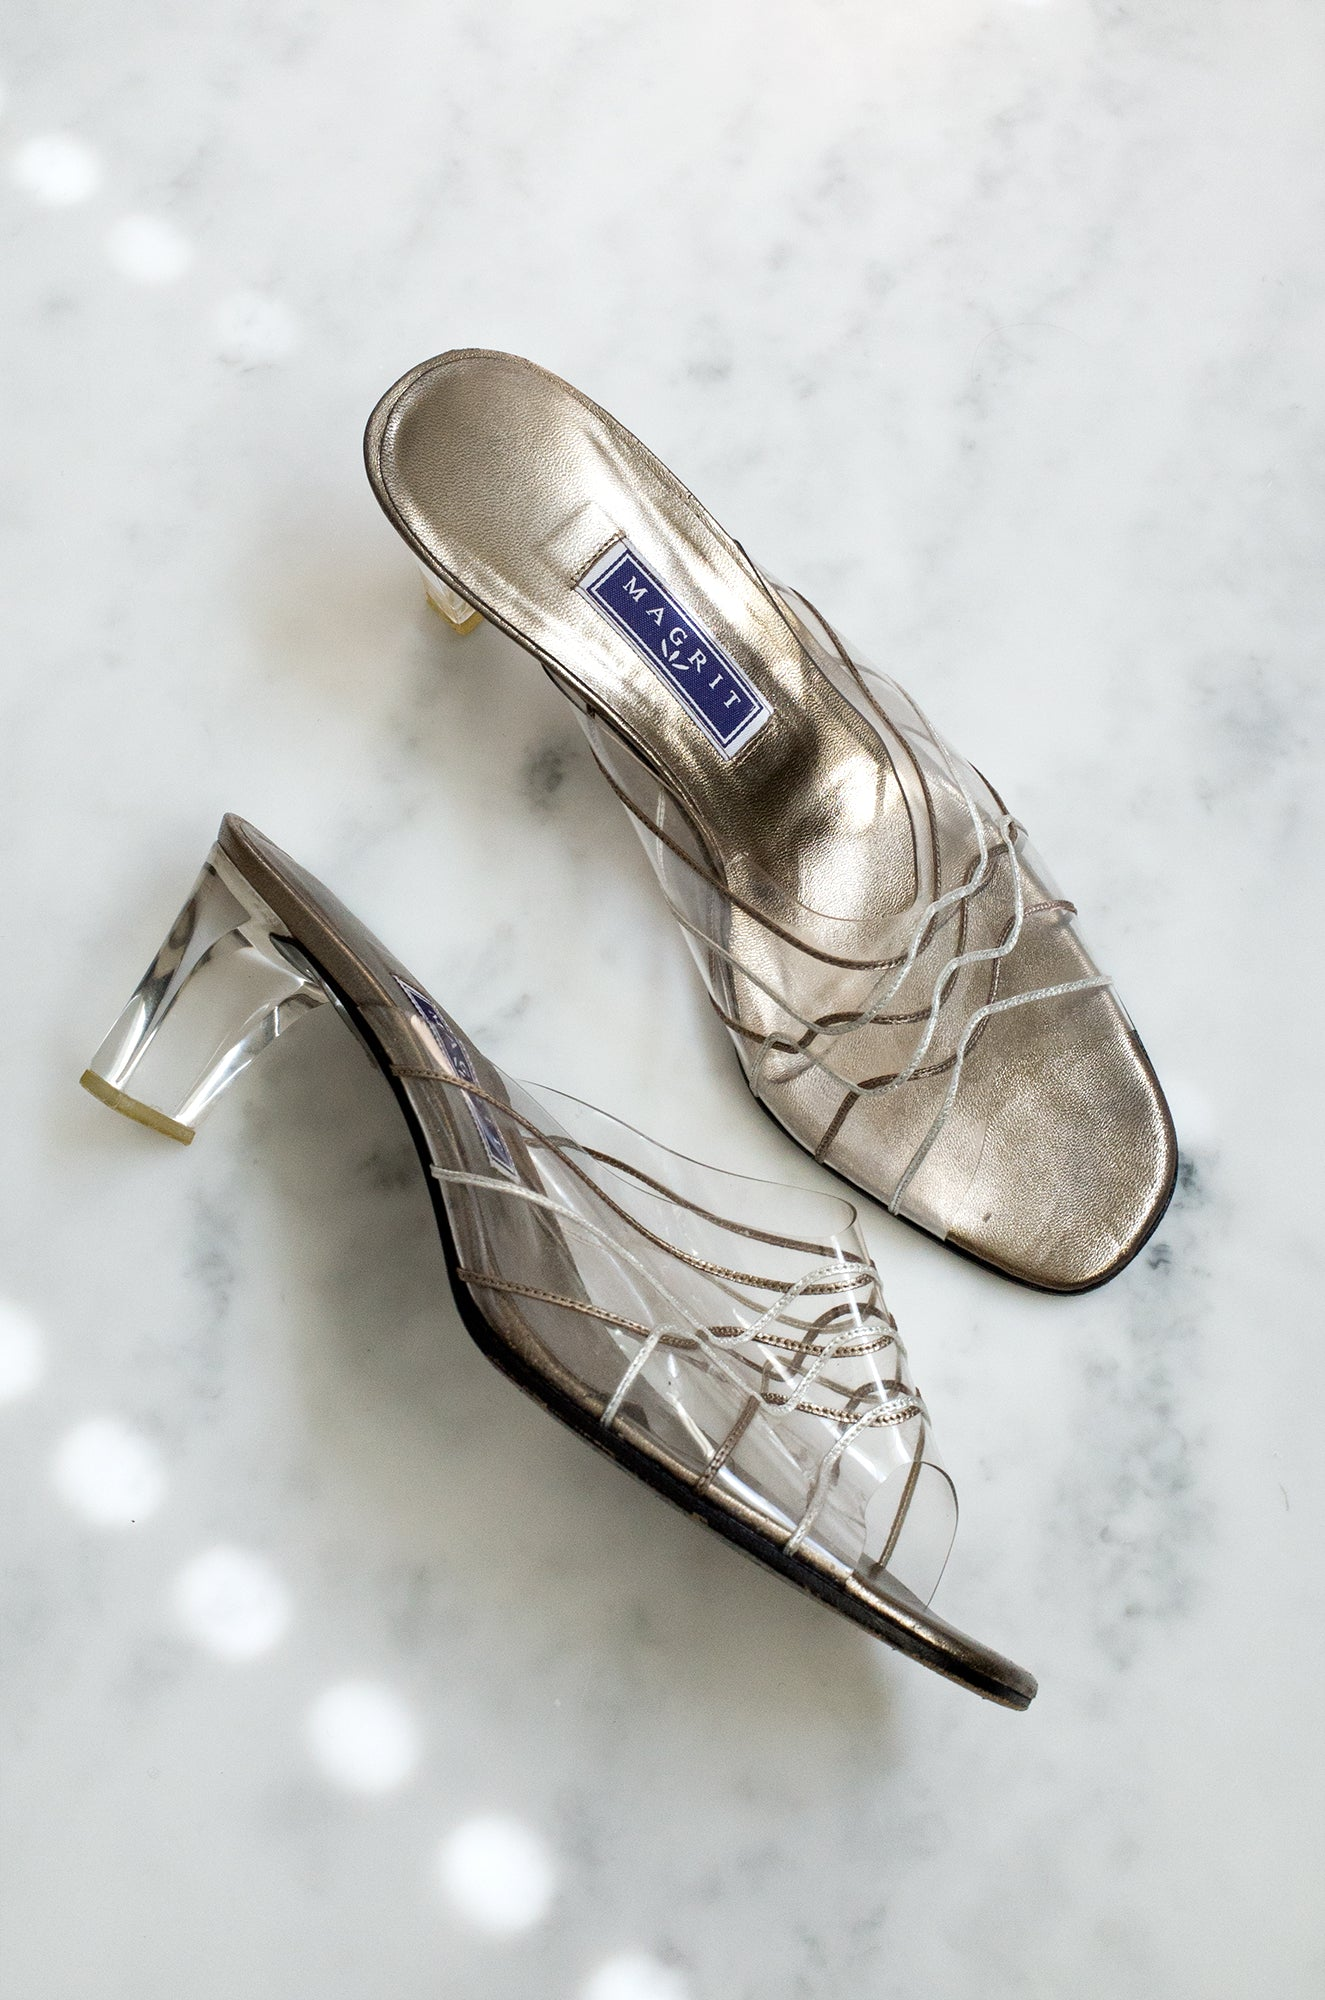 Vintage 1990s metallic and vinyl mules with wavy topstitching and a clear plexiglass heel.